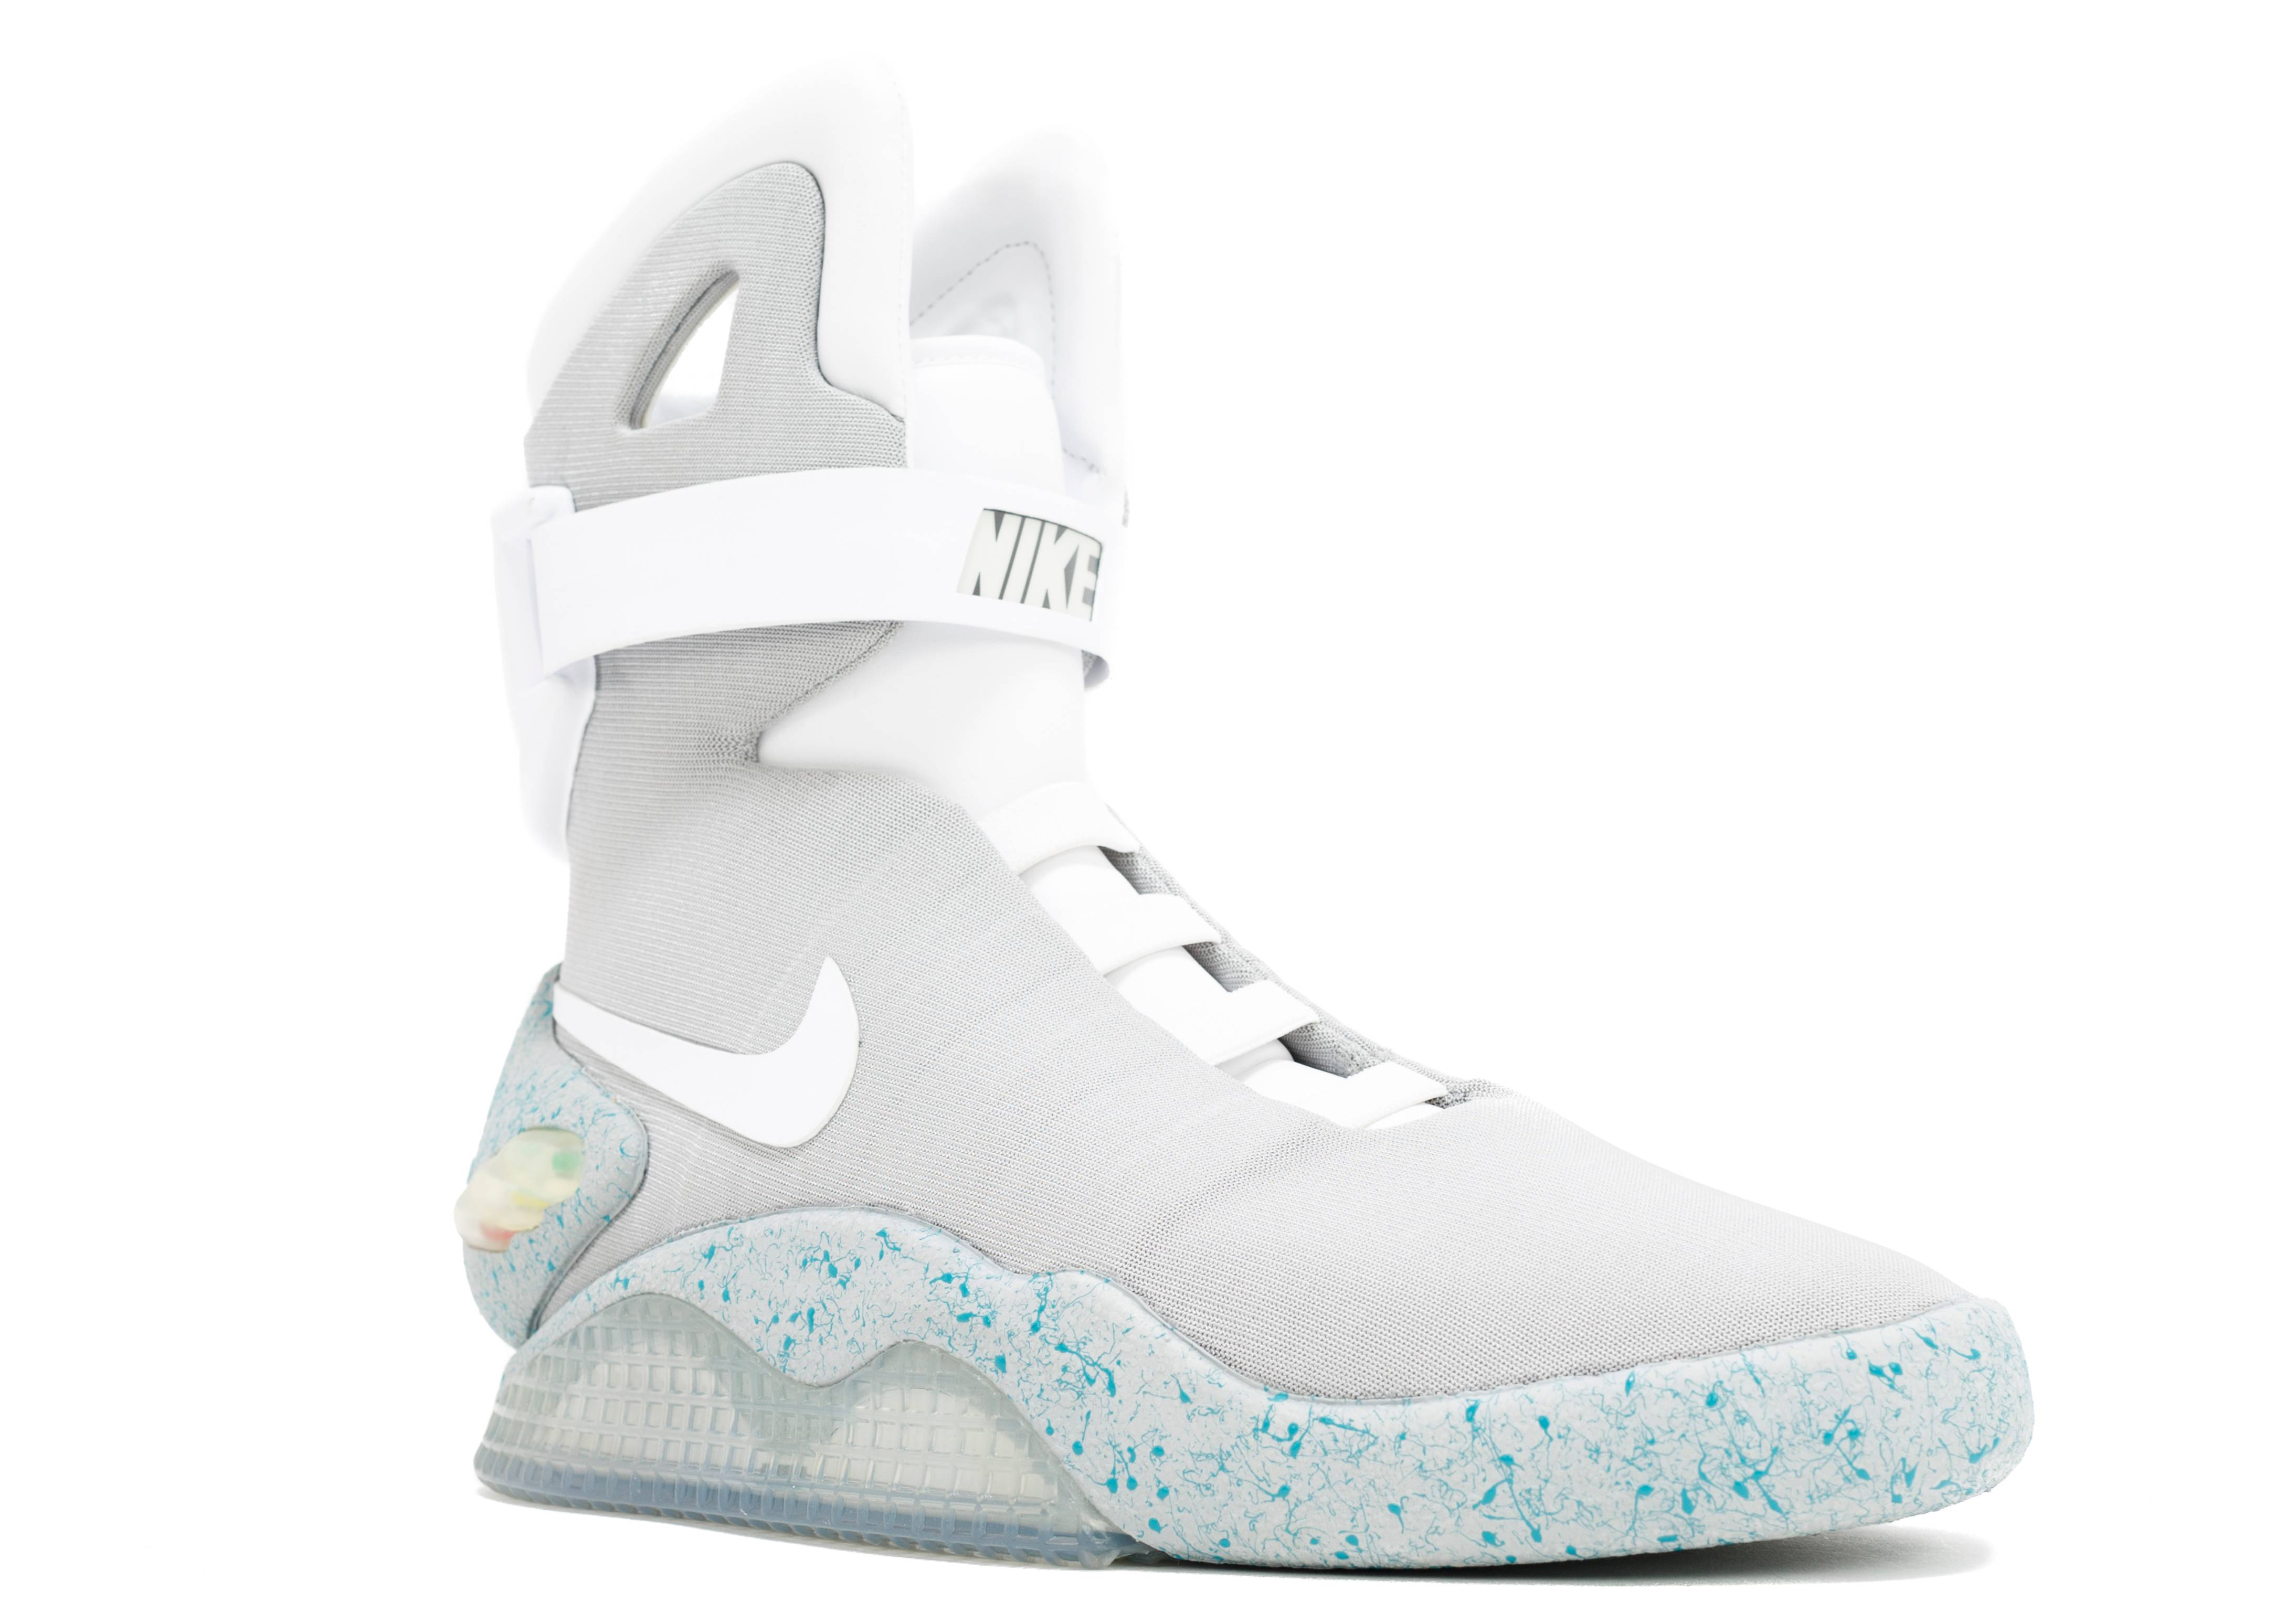 Back To The Future Nike Shoes Flight Club